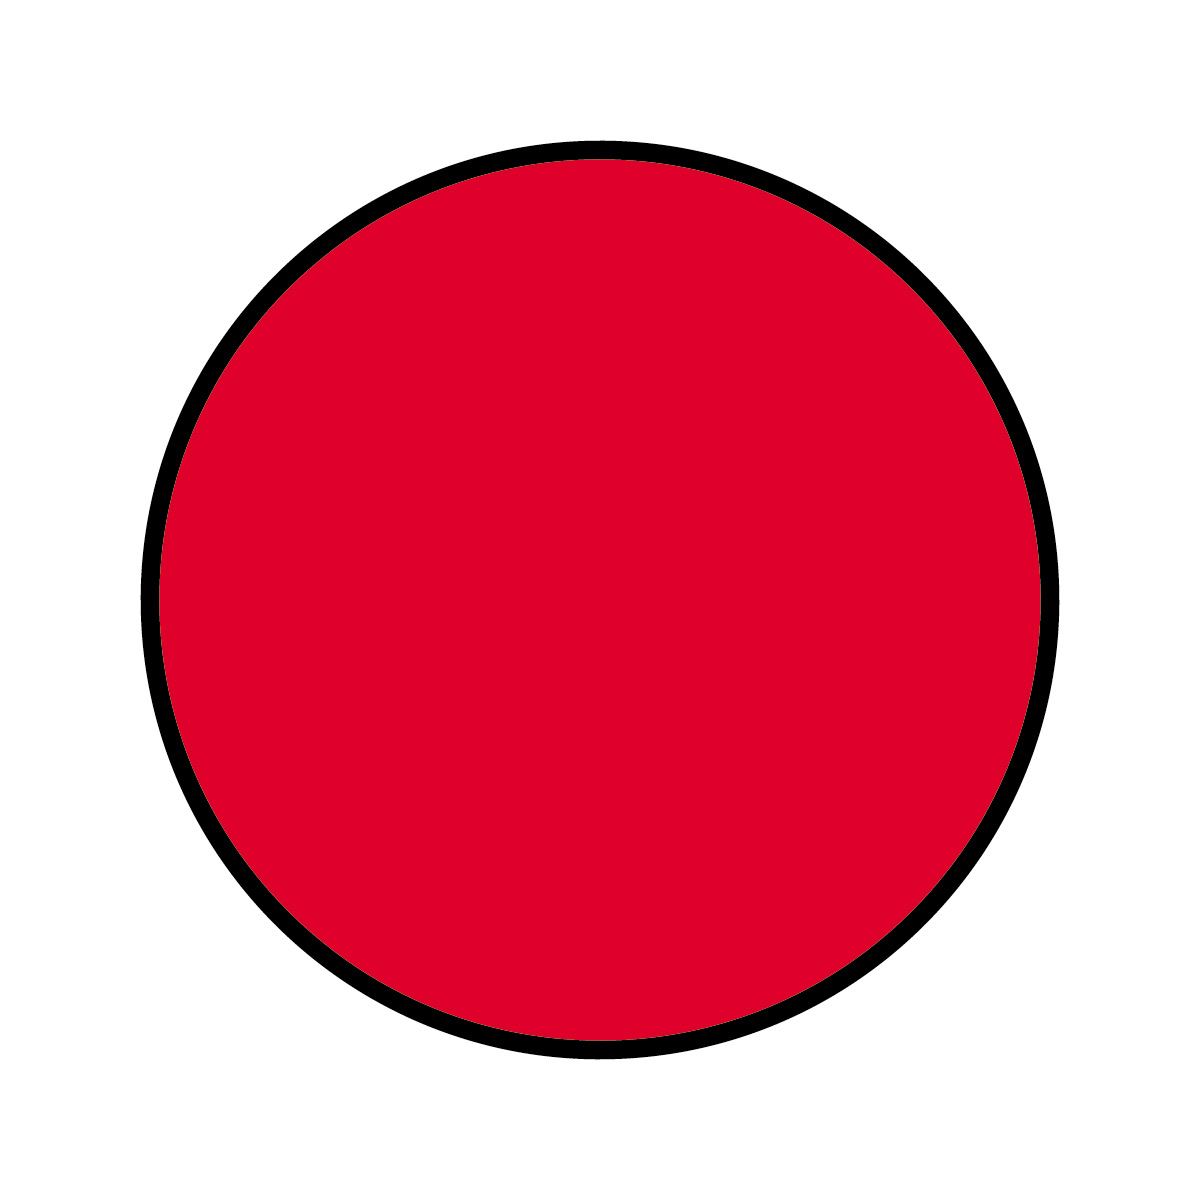 Shapes clipart circle. Free color cliparts download